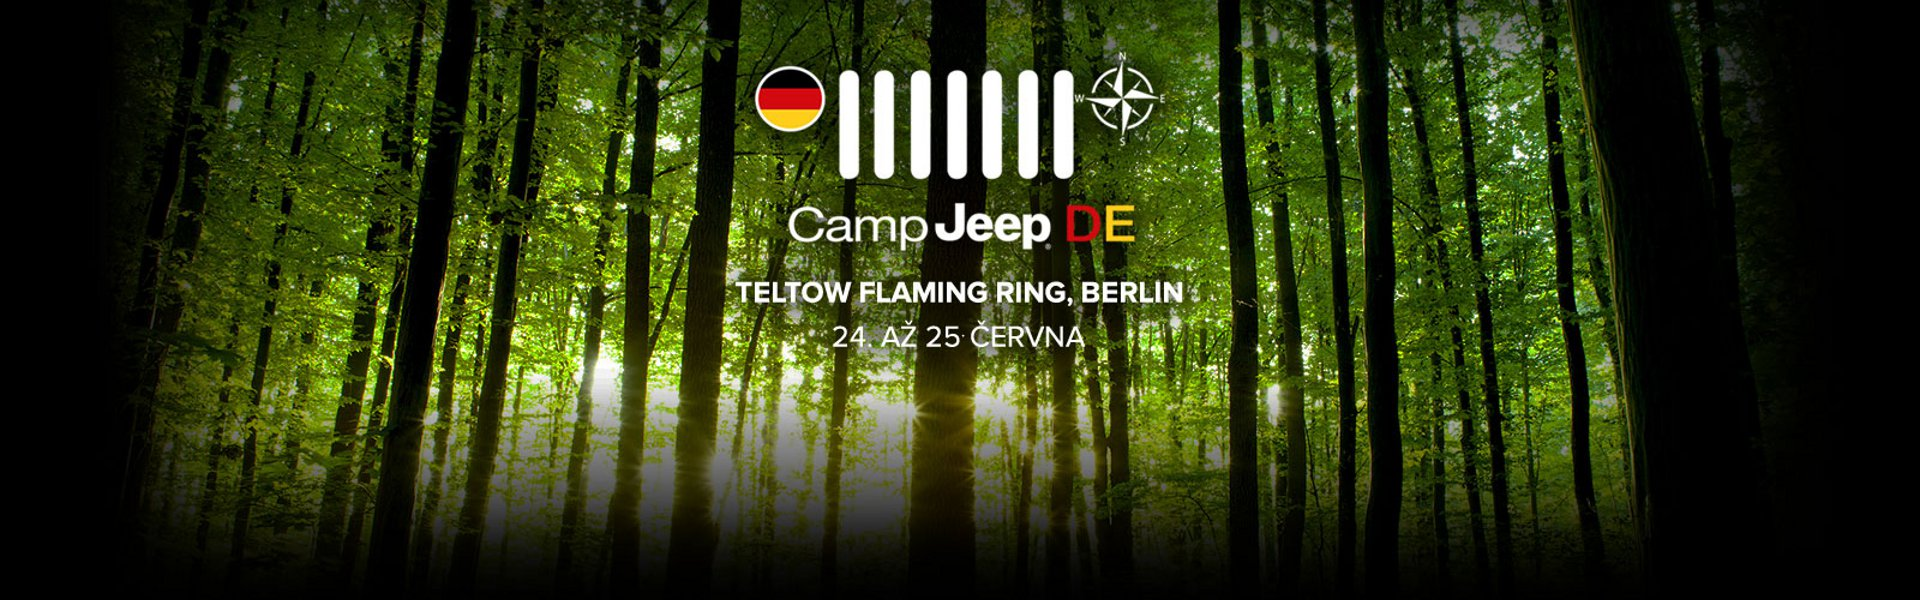 /images/mod_InteractiveBanner/img/20_1_1_2_jeep-camp-website-header-cz.jpg